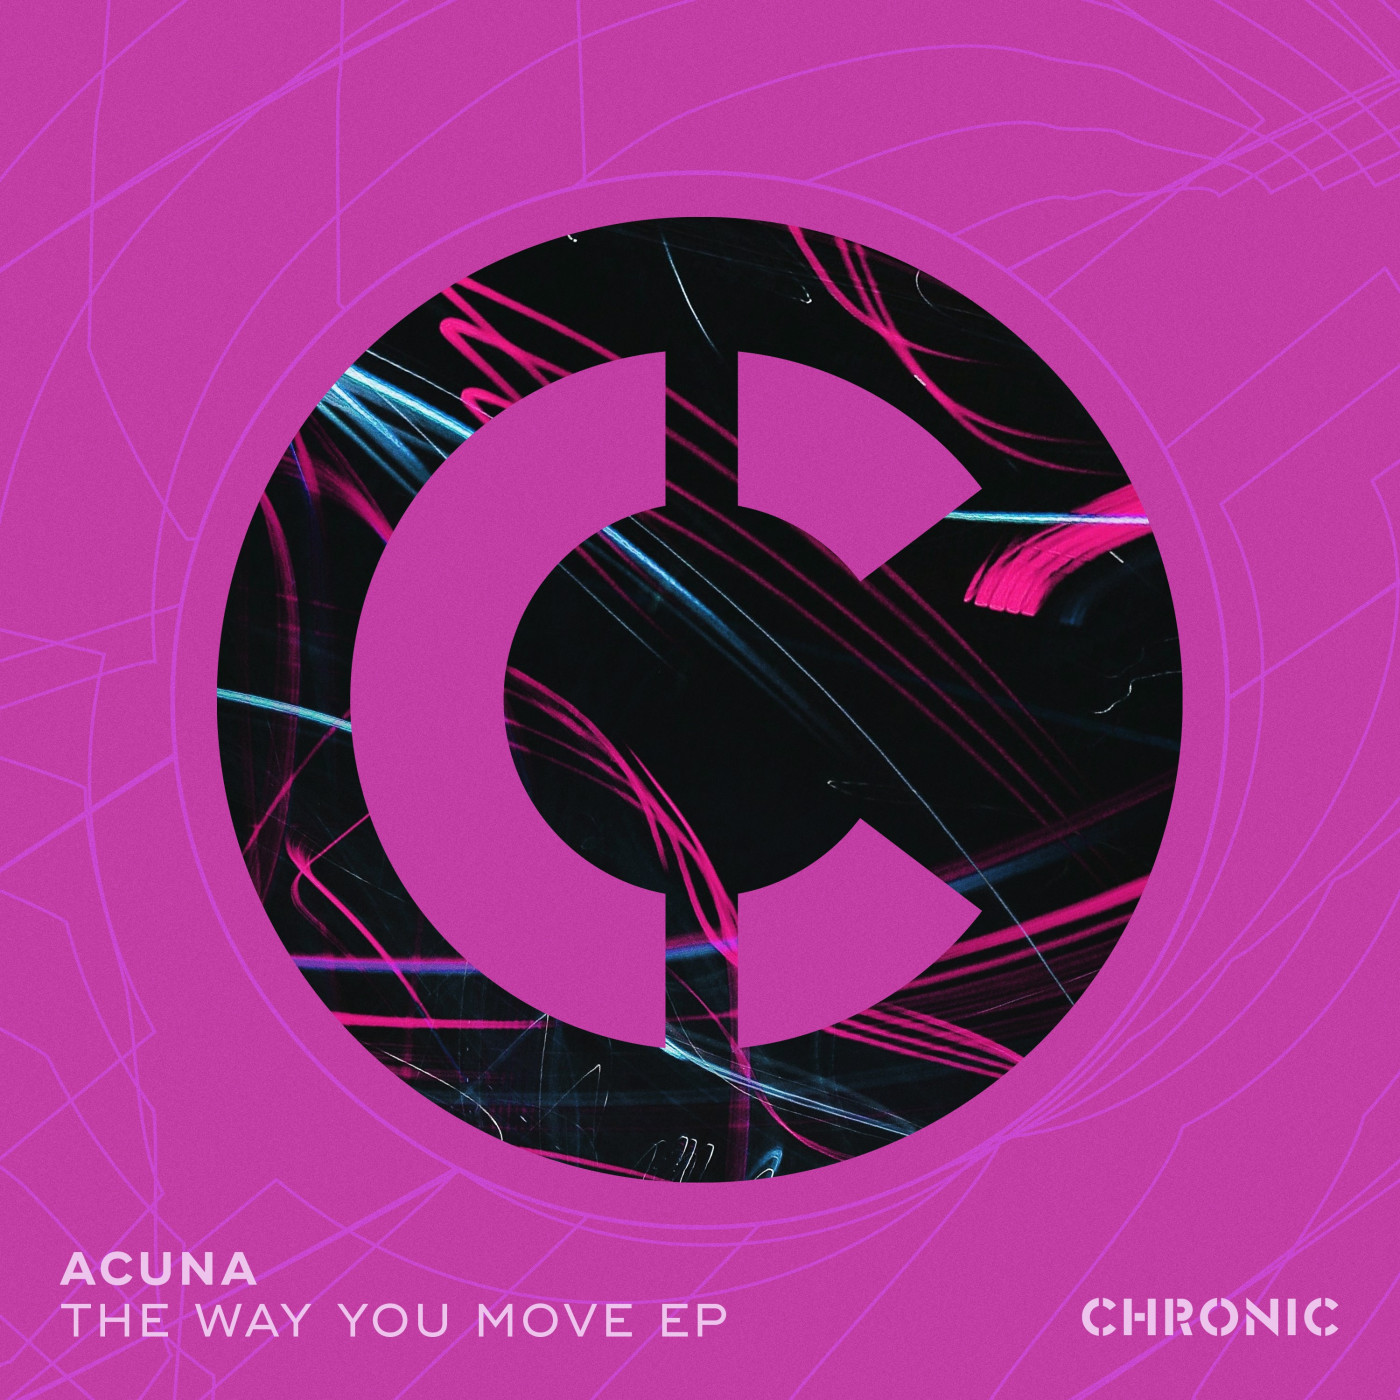 The Way You Move EP